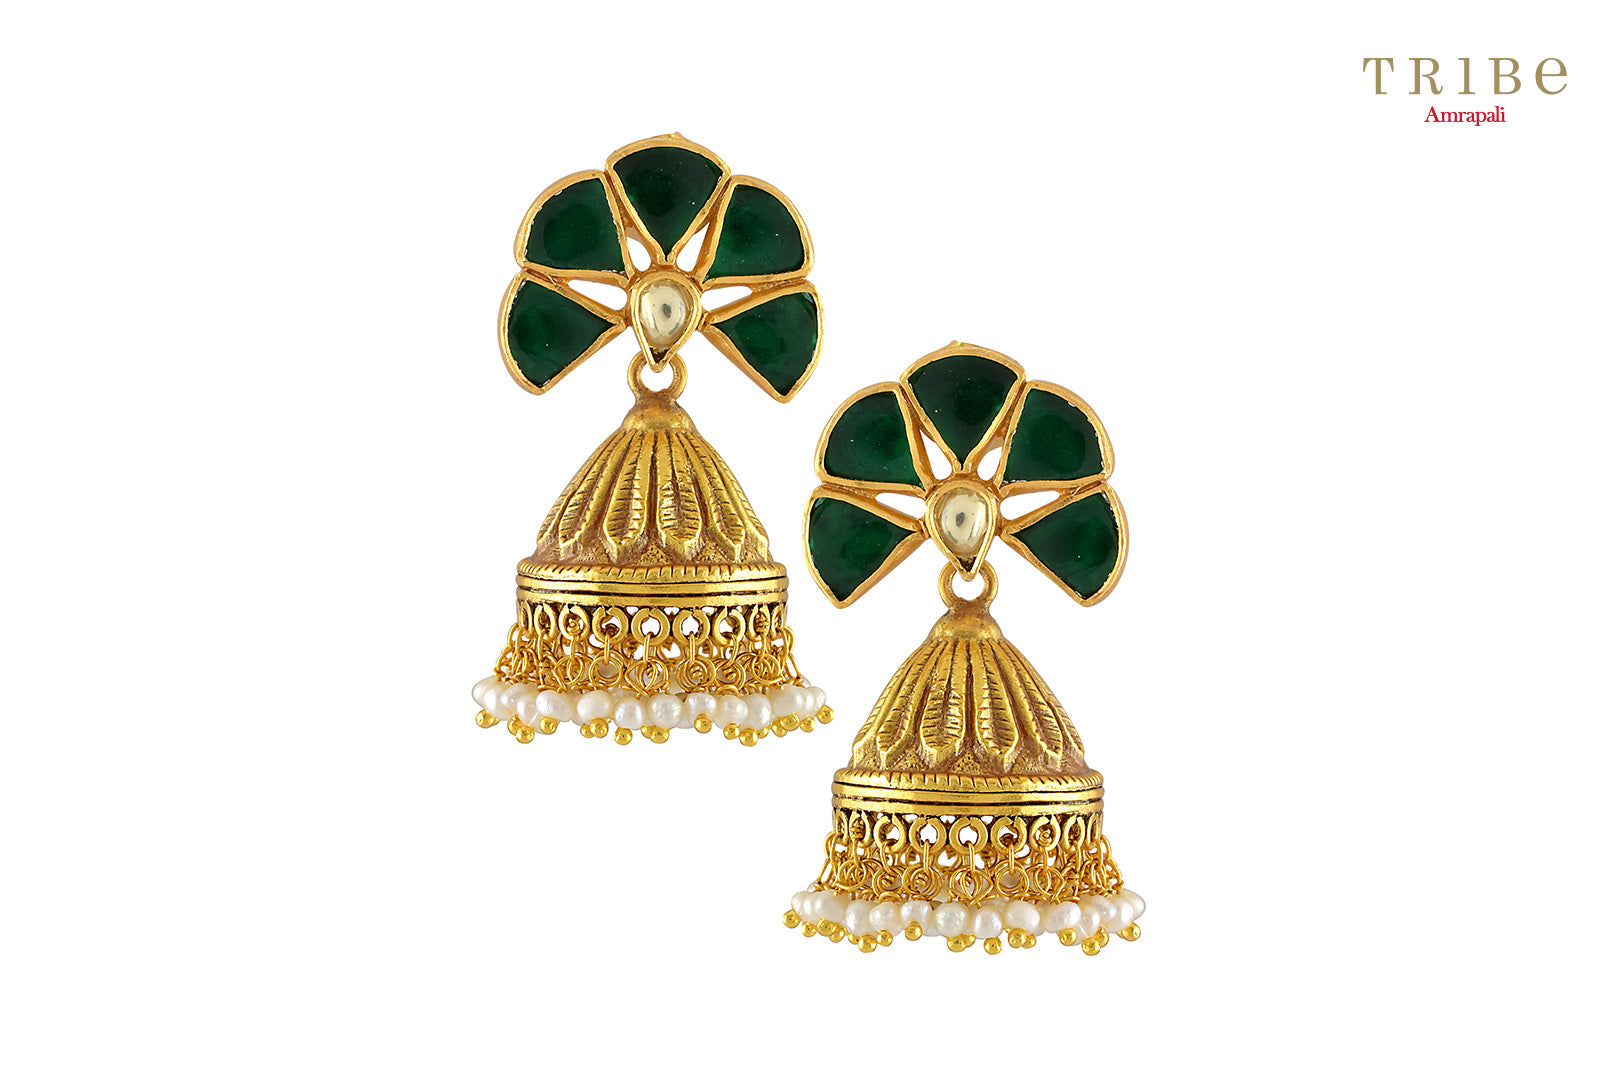 Tribe Amrapali silver gold plated green crystal pearl drop fan jhumka earrings buy online in USA.  If you are looking for Indian silver gold plated jewelry in USA, then Pure Elegance clothing store is your one stop solution, shop now.-full view